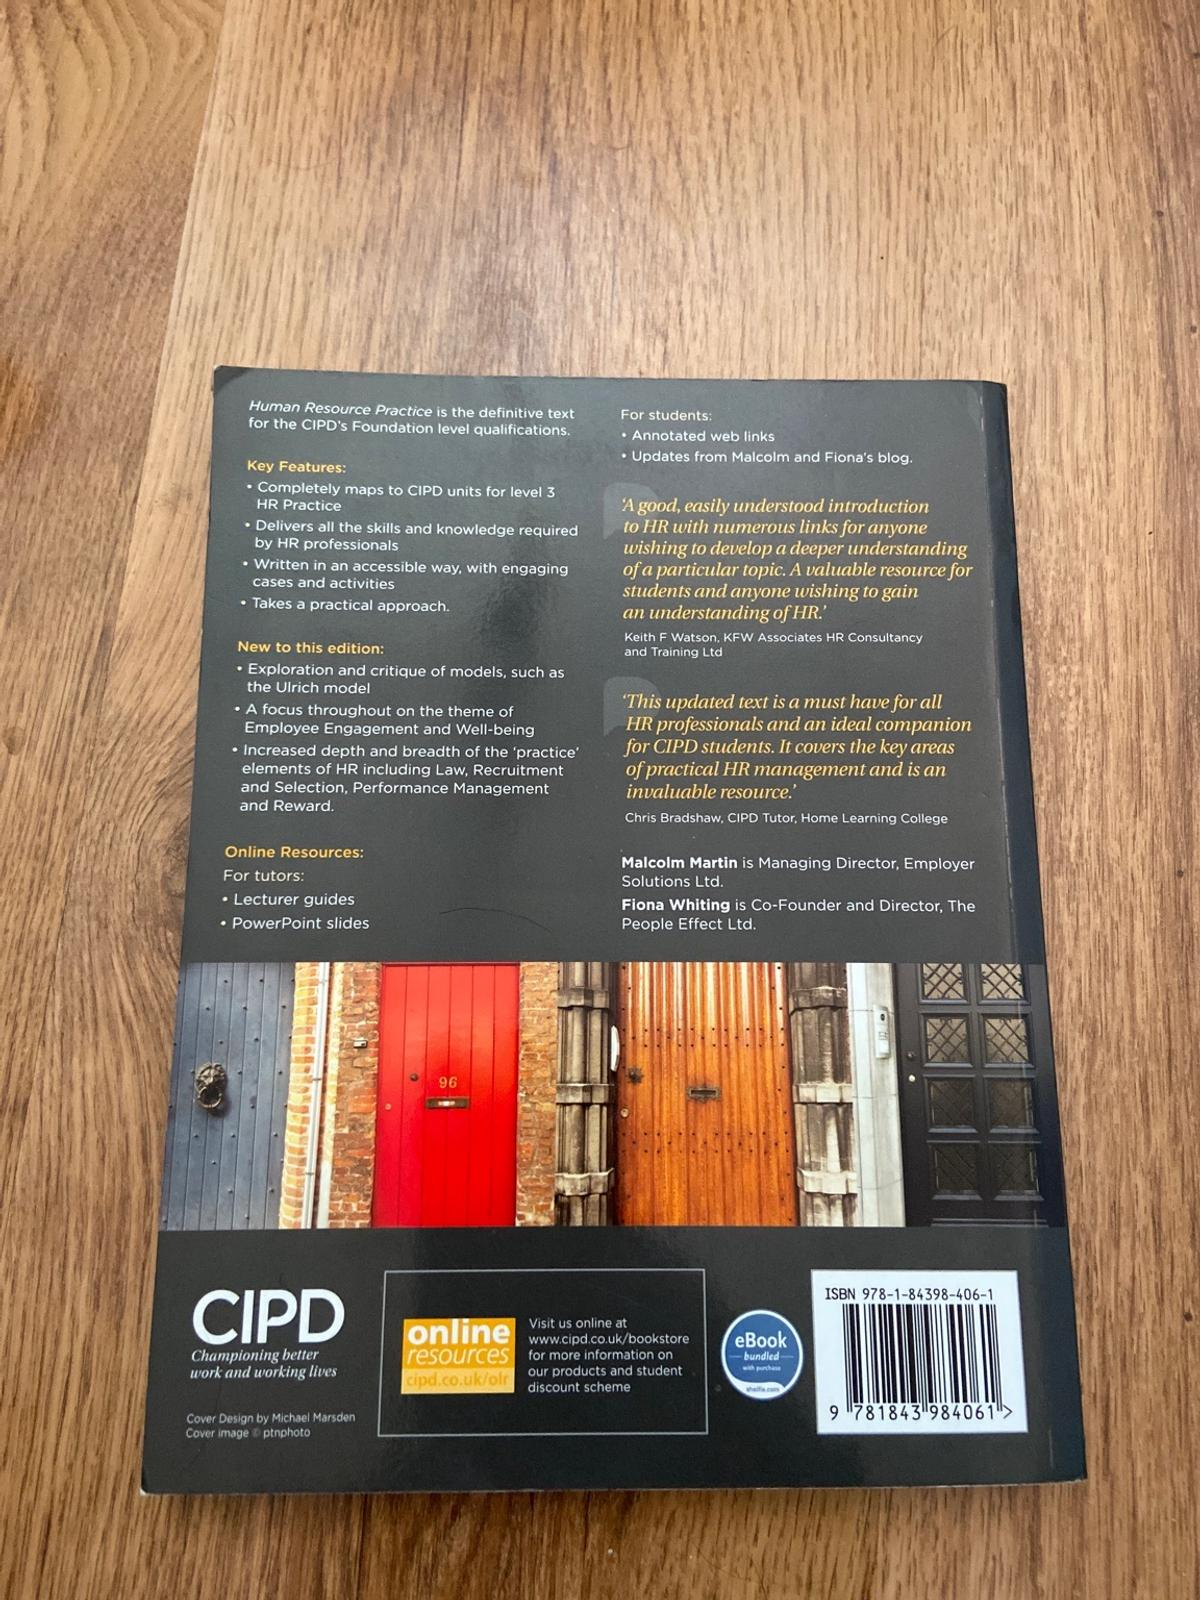 Human resource practice 7th edition - Malcolm Martin and Fiona Whiting. Perfect for your CIPD.  Pretty much as good as new